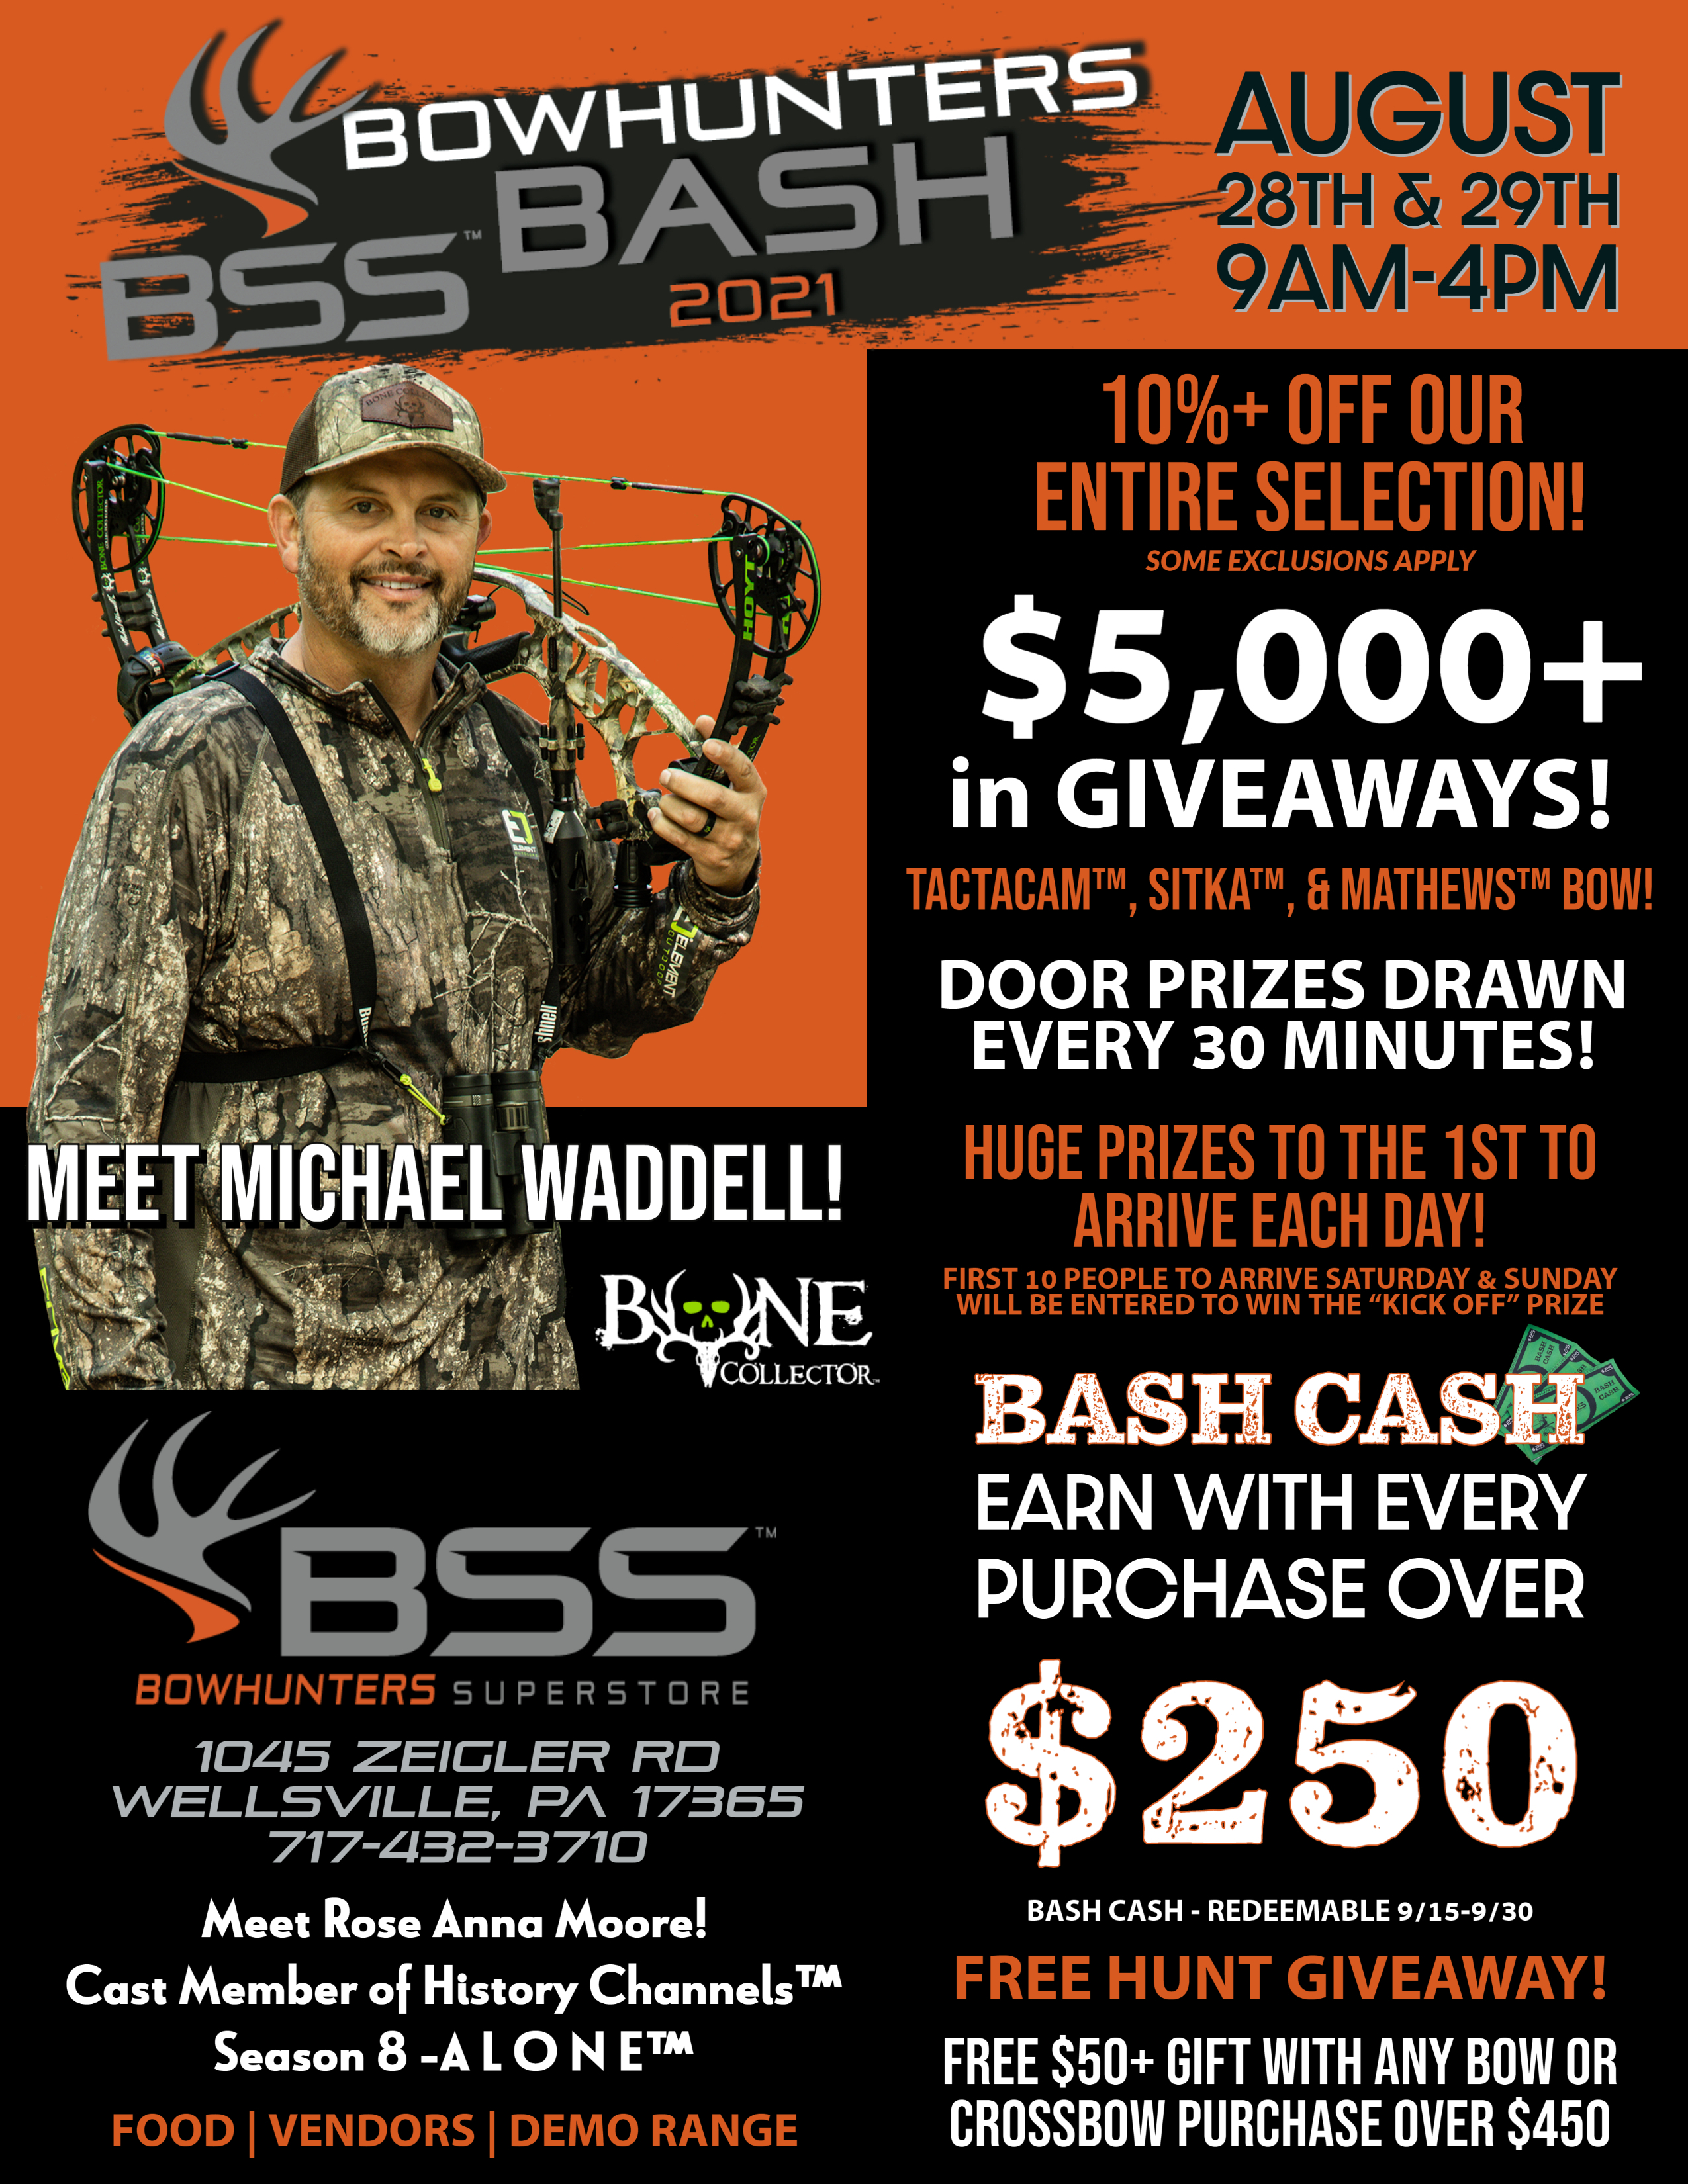 Bowhunters Bash for Bowhunters Superstore @ Bowhunters Superstore